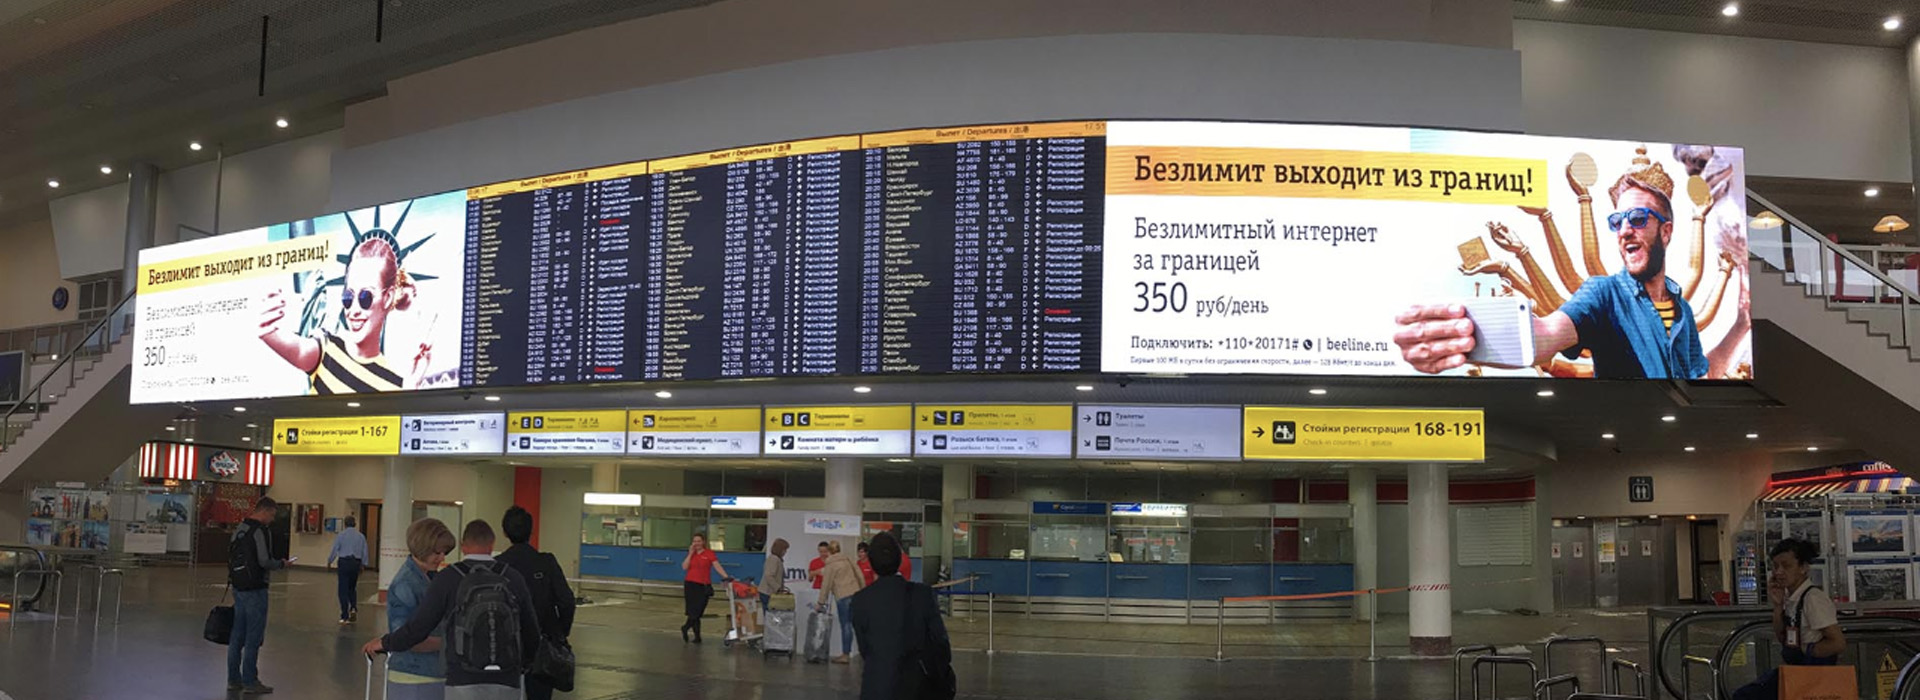 Transport-Visitors-Have-An-Immersive-Experience-With-LED-Display-Systems5 copy